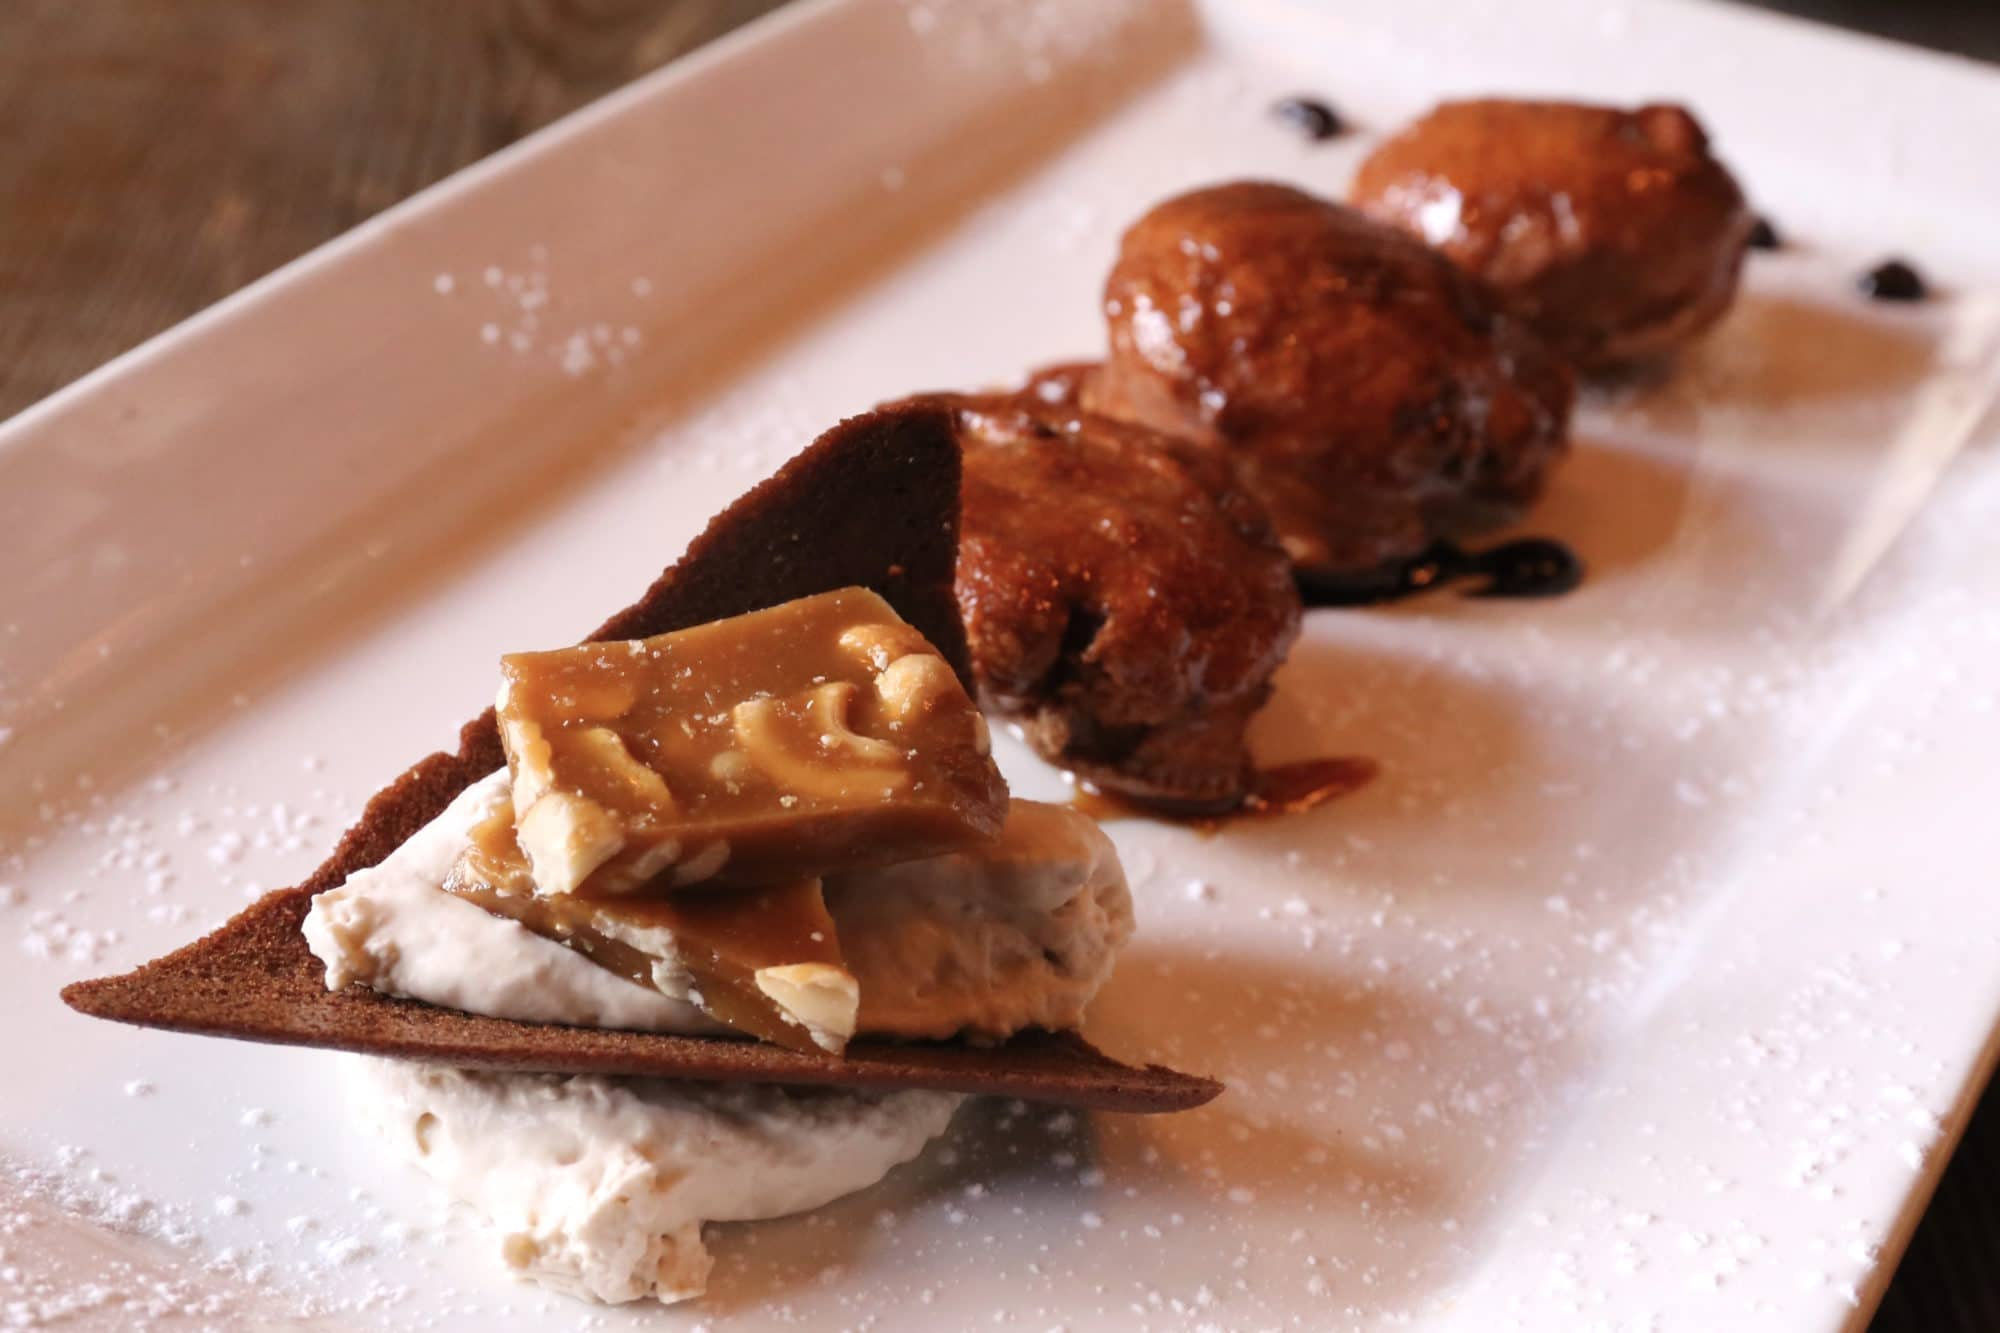 Abe Erb Waterloo: Apple Fritters with cider glaze, tuile cookie, whipped cream and chocolate sauce